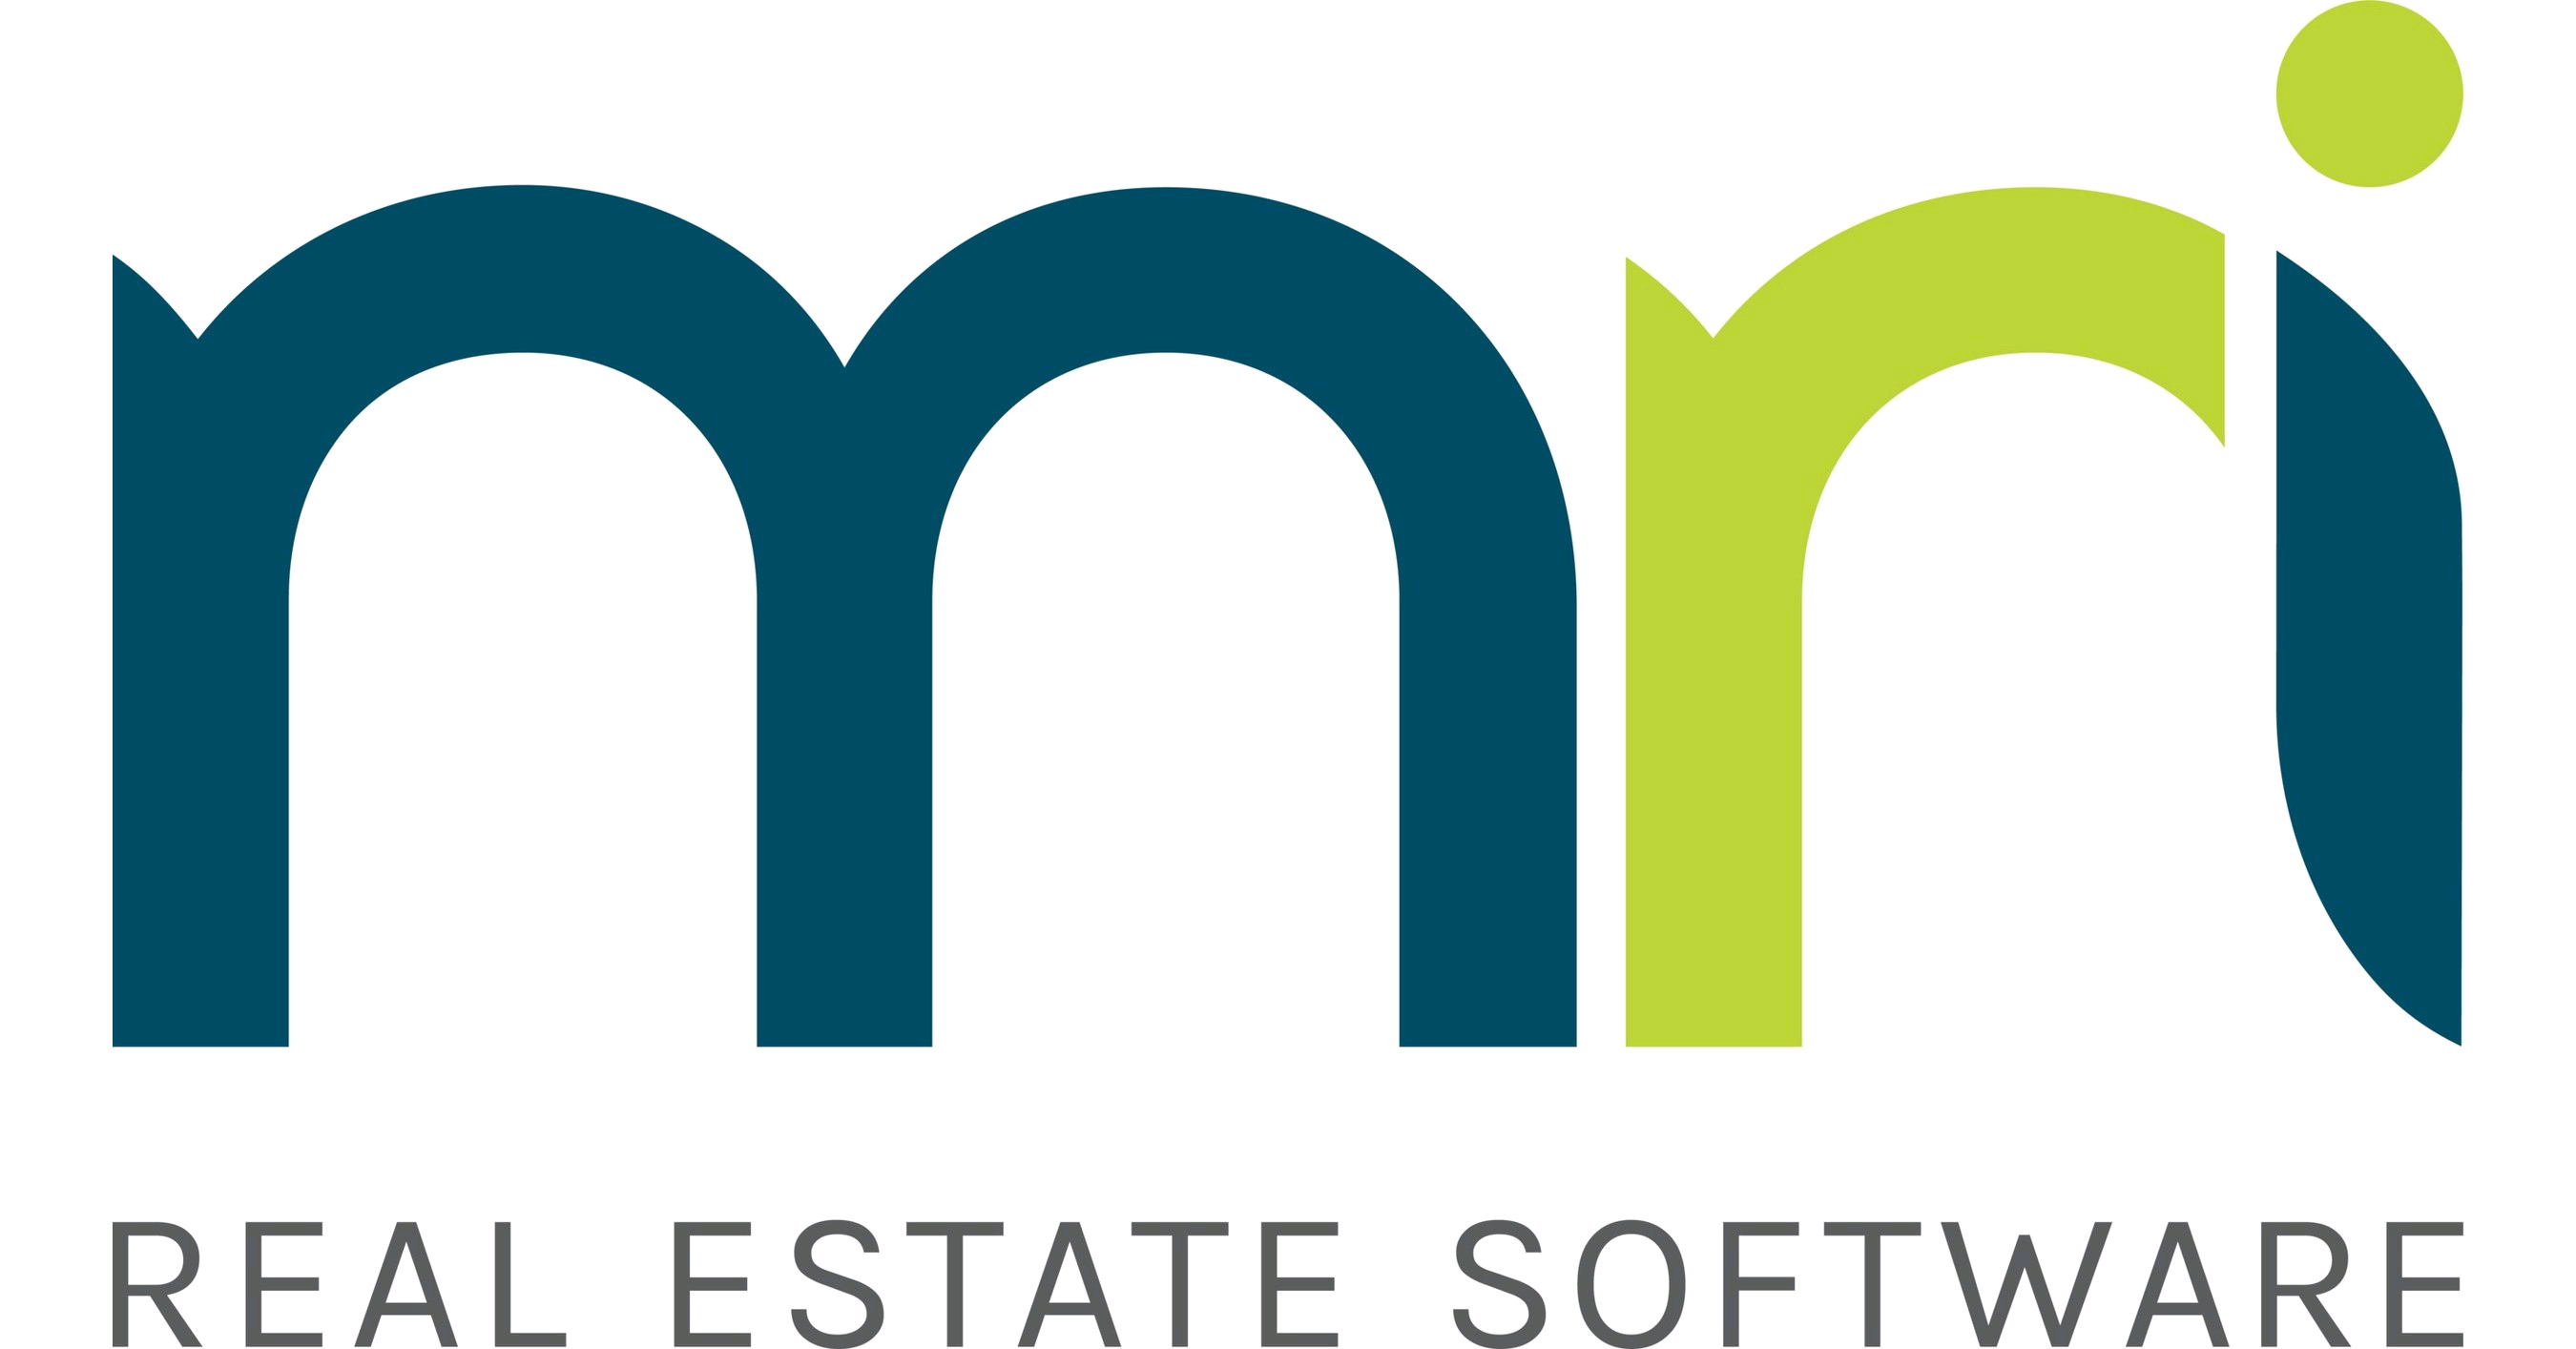 Low Turnover Persists in Multifamily Units Across Asset